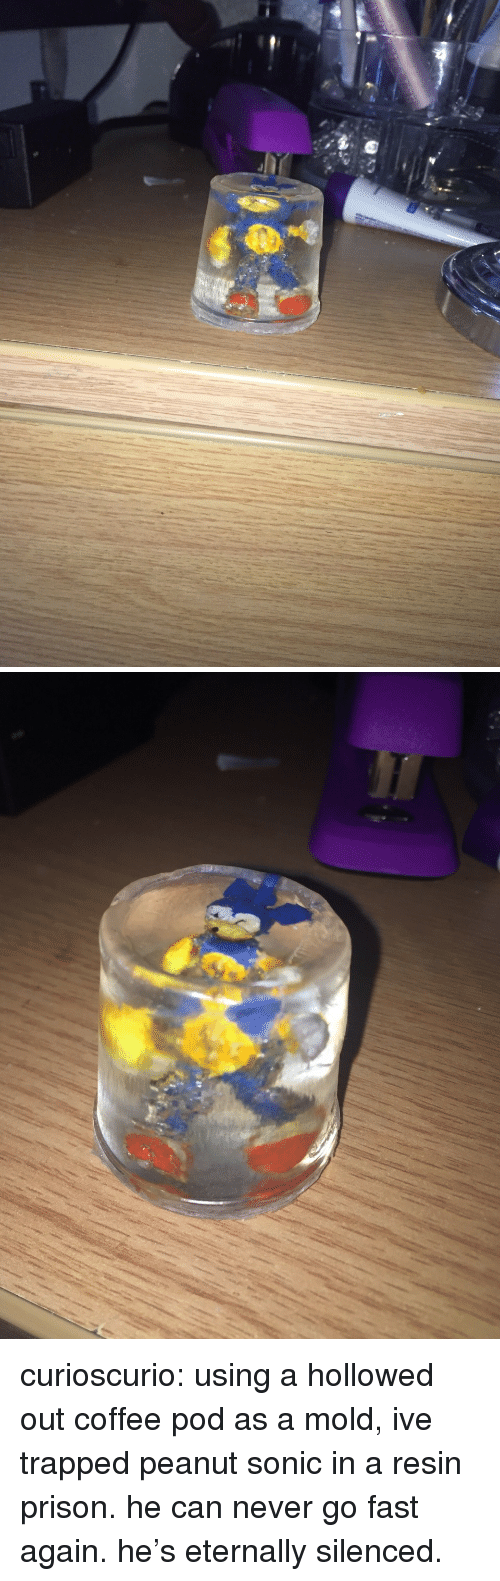 silenced: curioscurio: using a hollowed out coffee pod as a mold, ive trapped peanut sonic in a resin prison. he can never go fast again. he's eternally silenced.